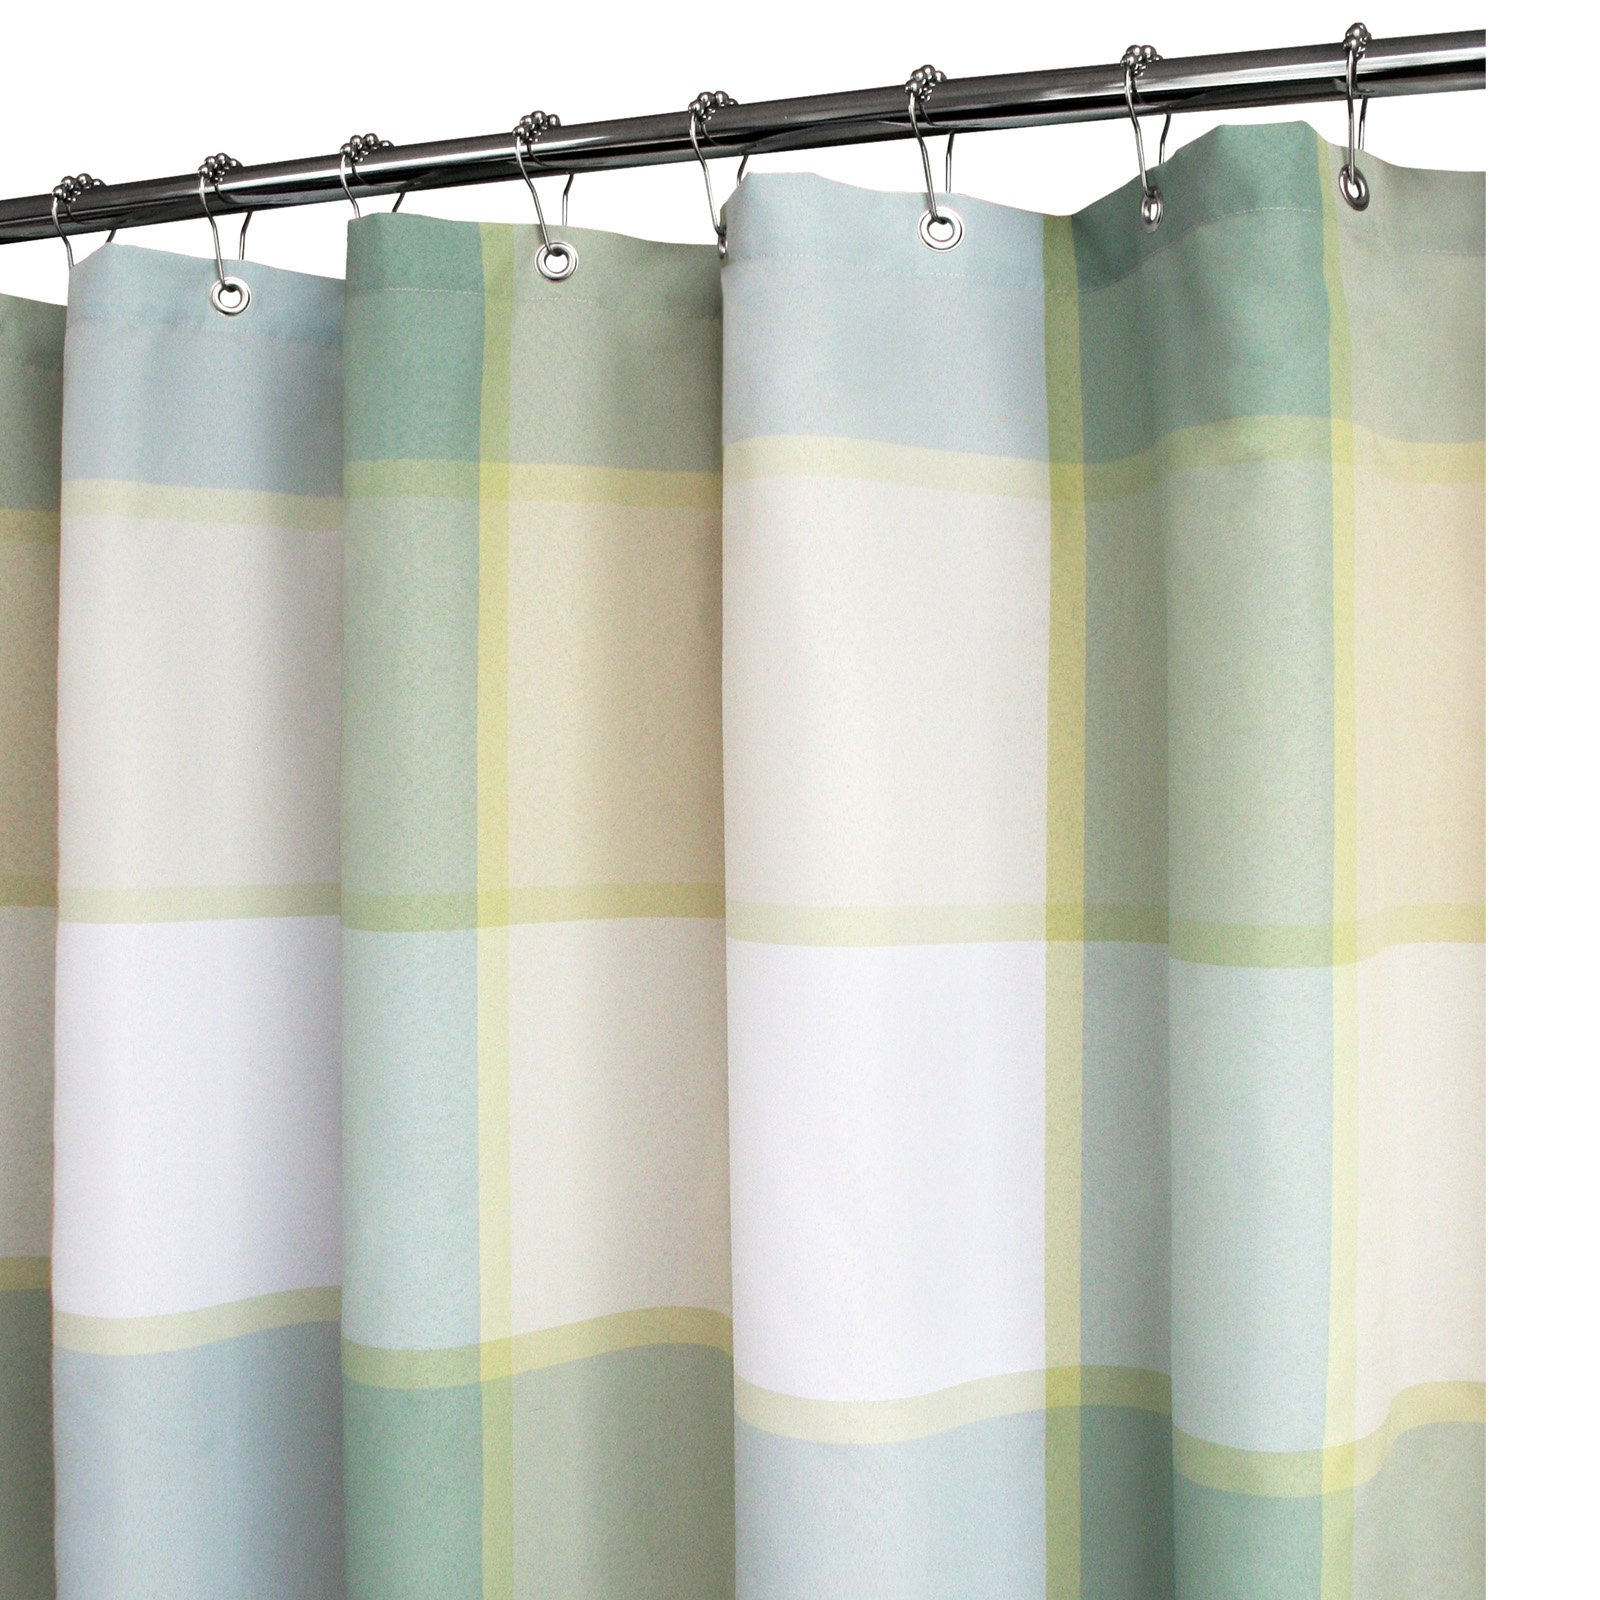 Park B. Smith Watershed Portman Shower Curtain